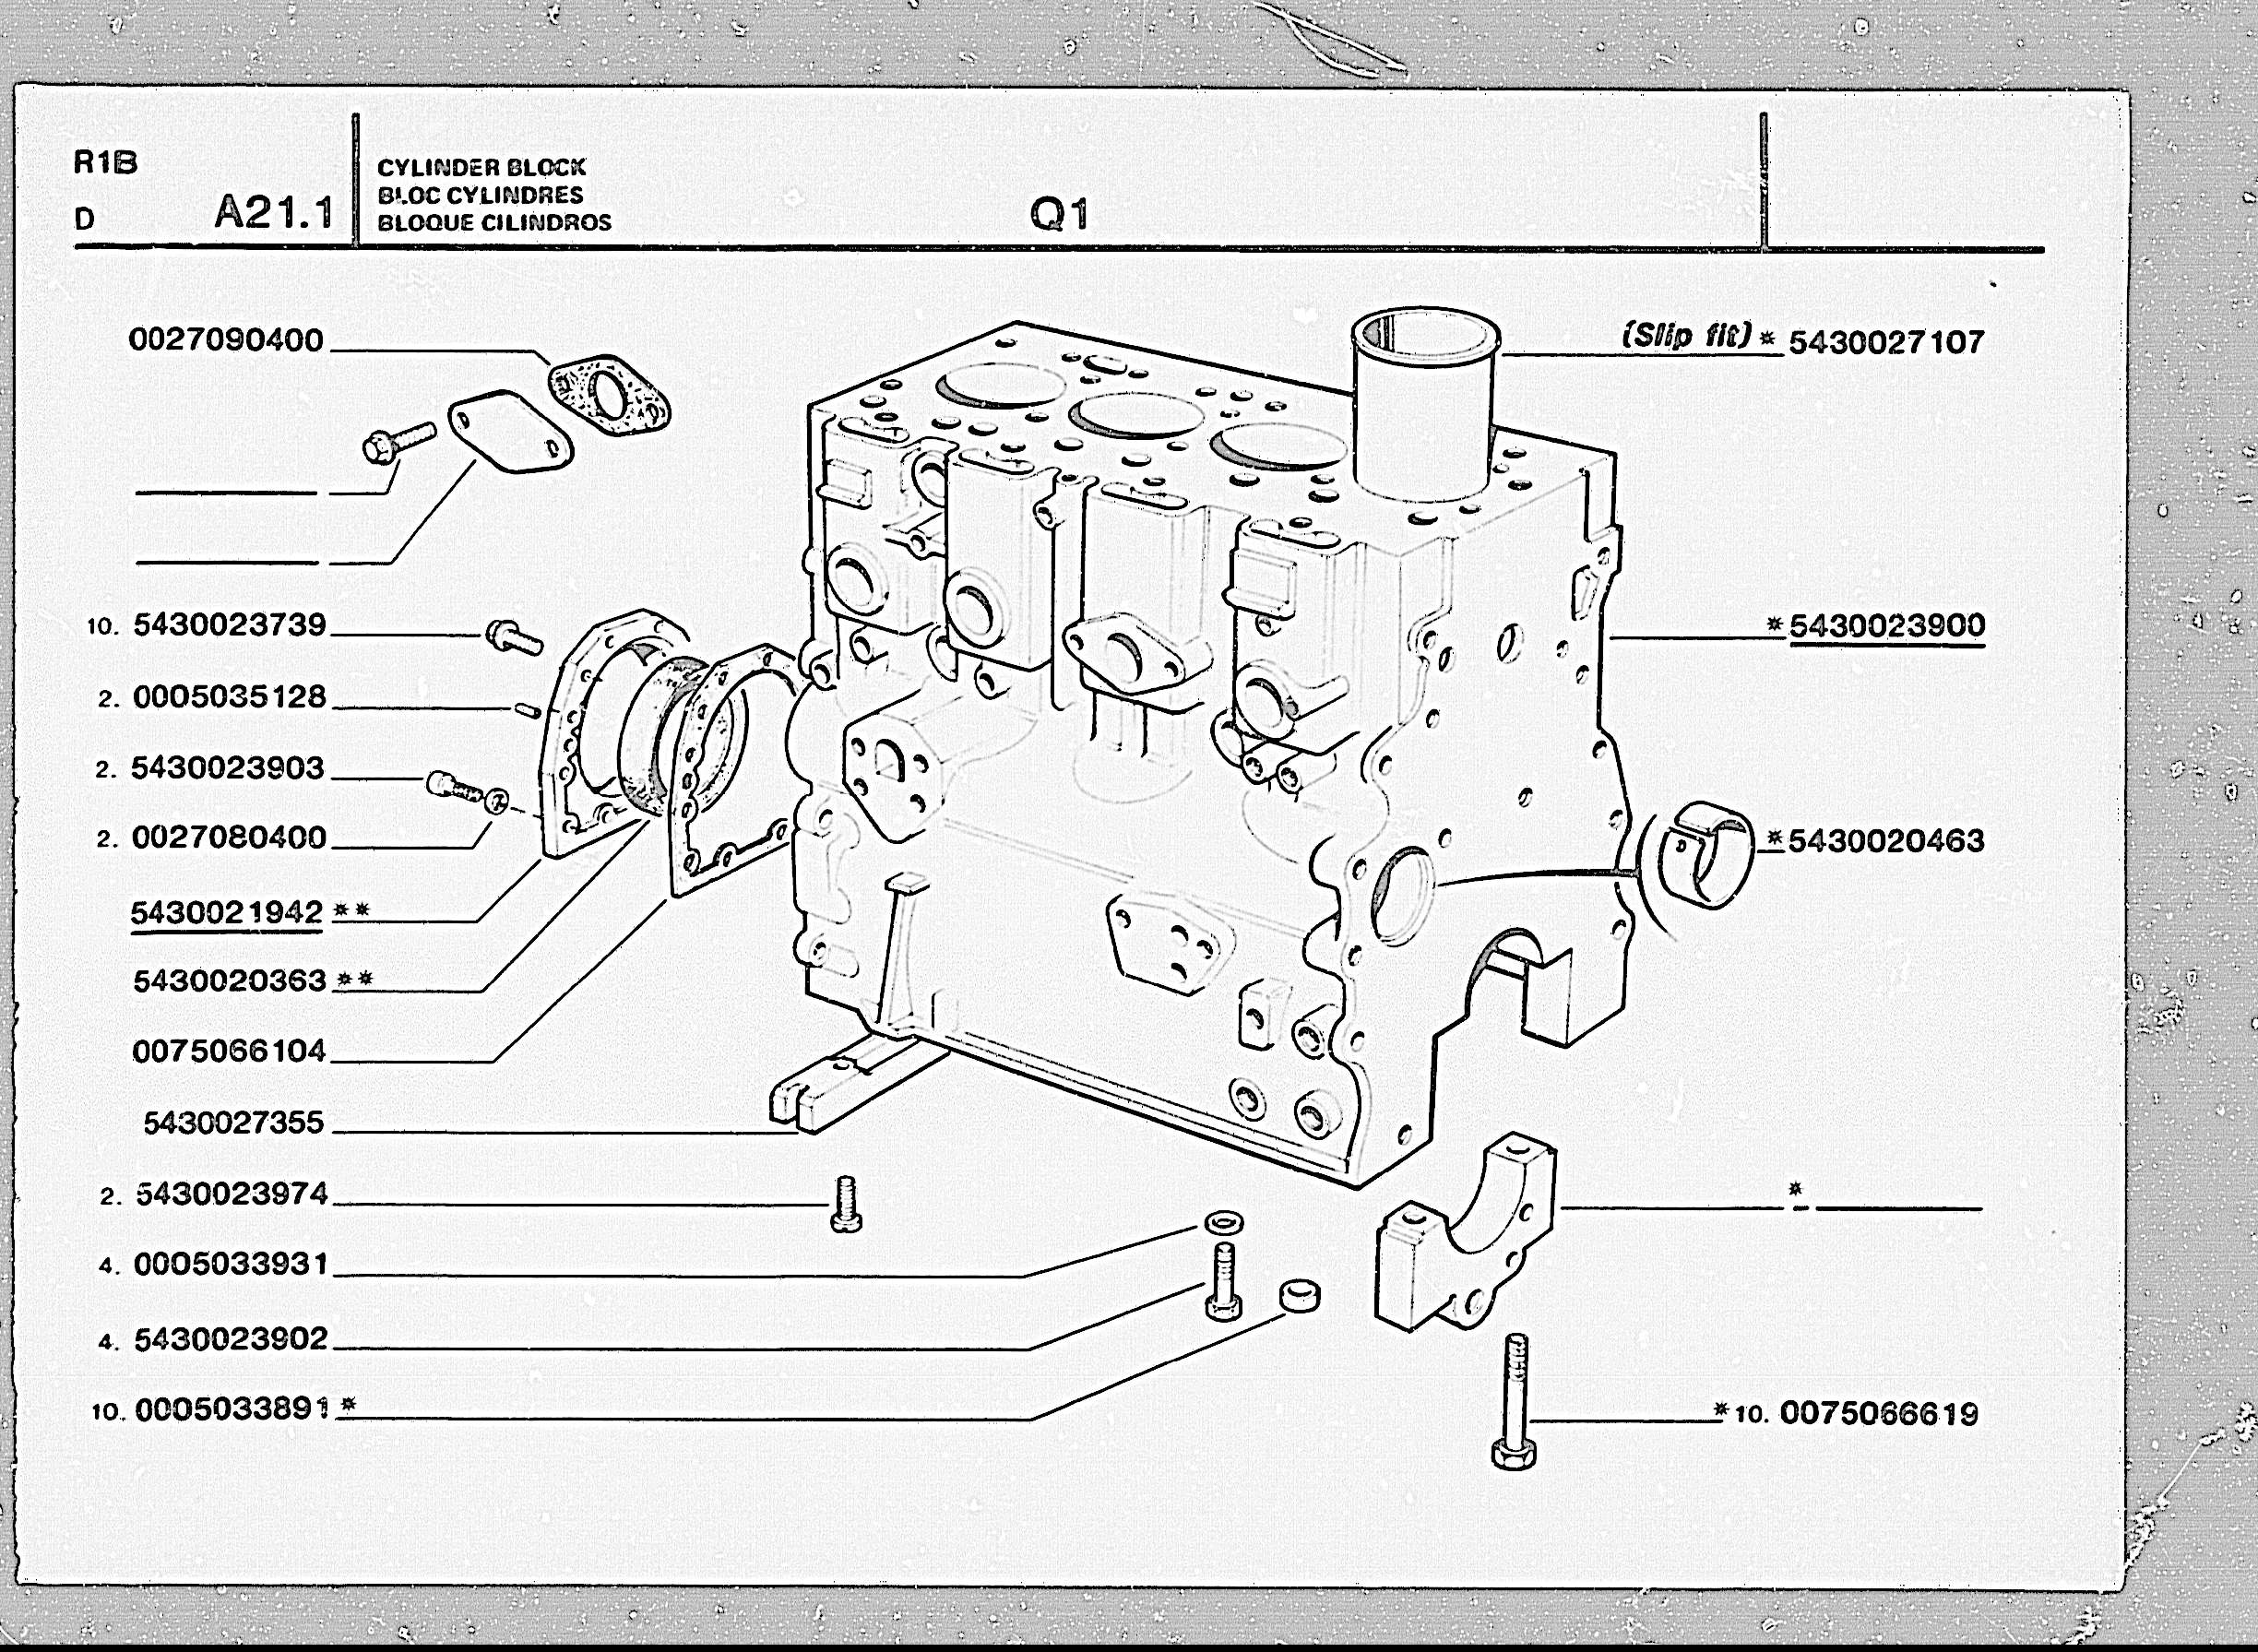 Index Of Full Parts Microfisch Mk11 New 50 Series R1b